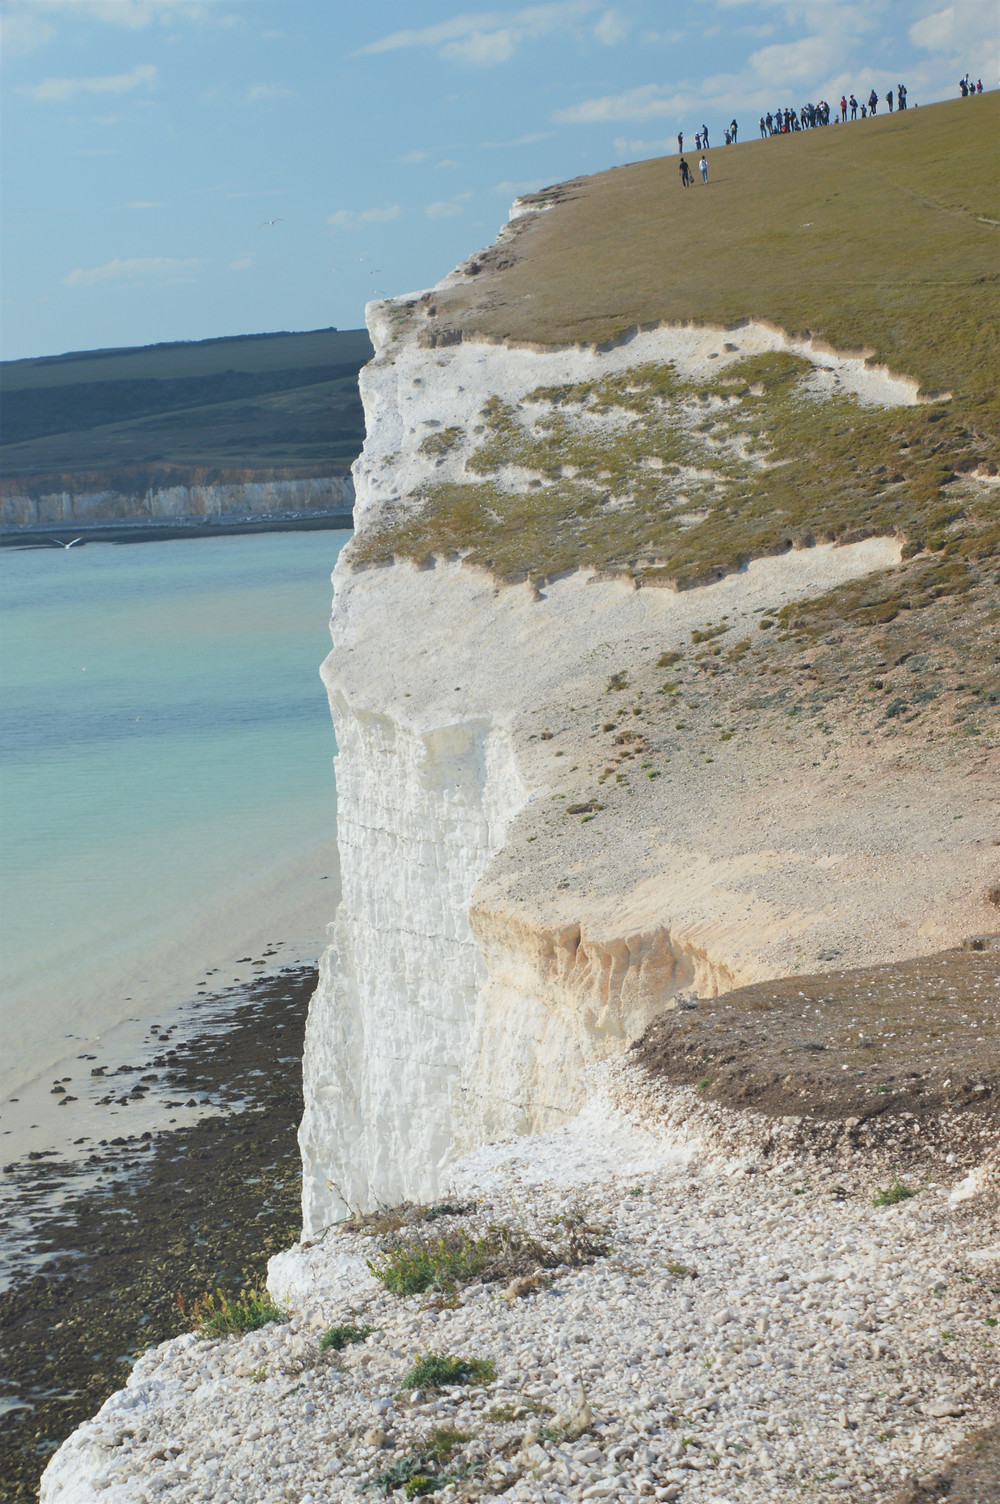 People gathered on the edge of Haven Brow, one of the Seven Sisters cliffs in England. Cliff whiteness is due to sedimentary chalk limestone